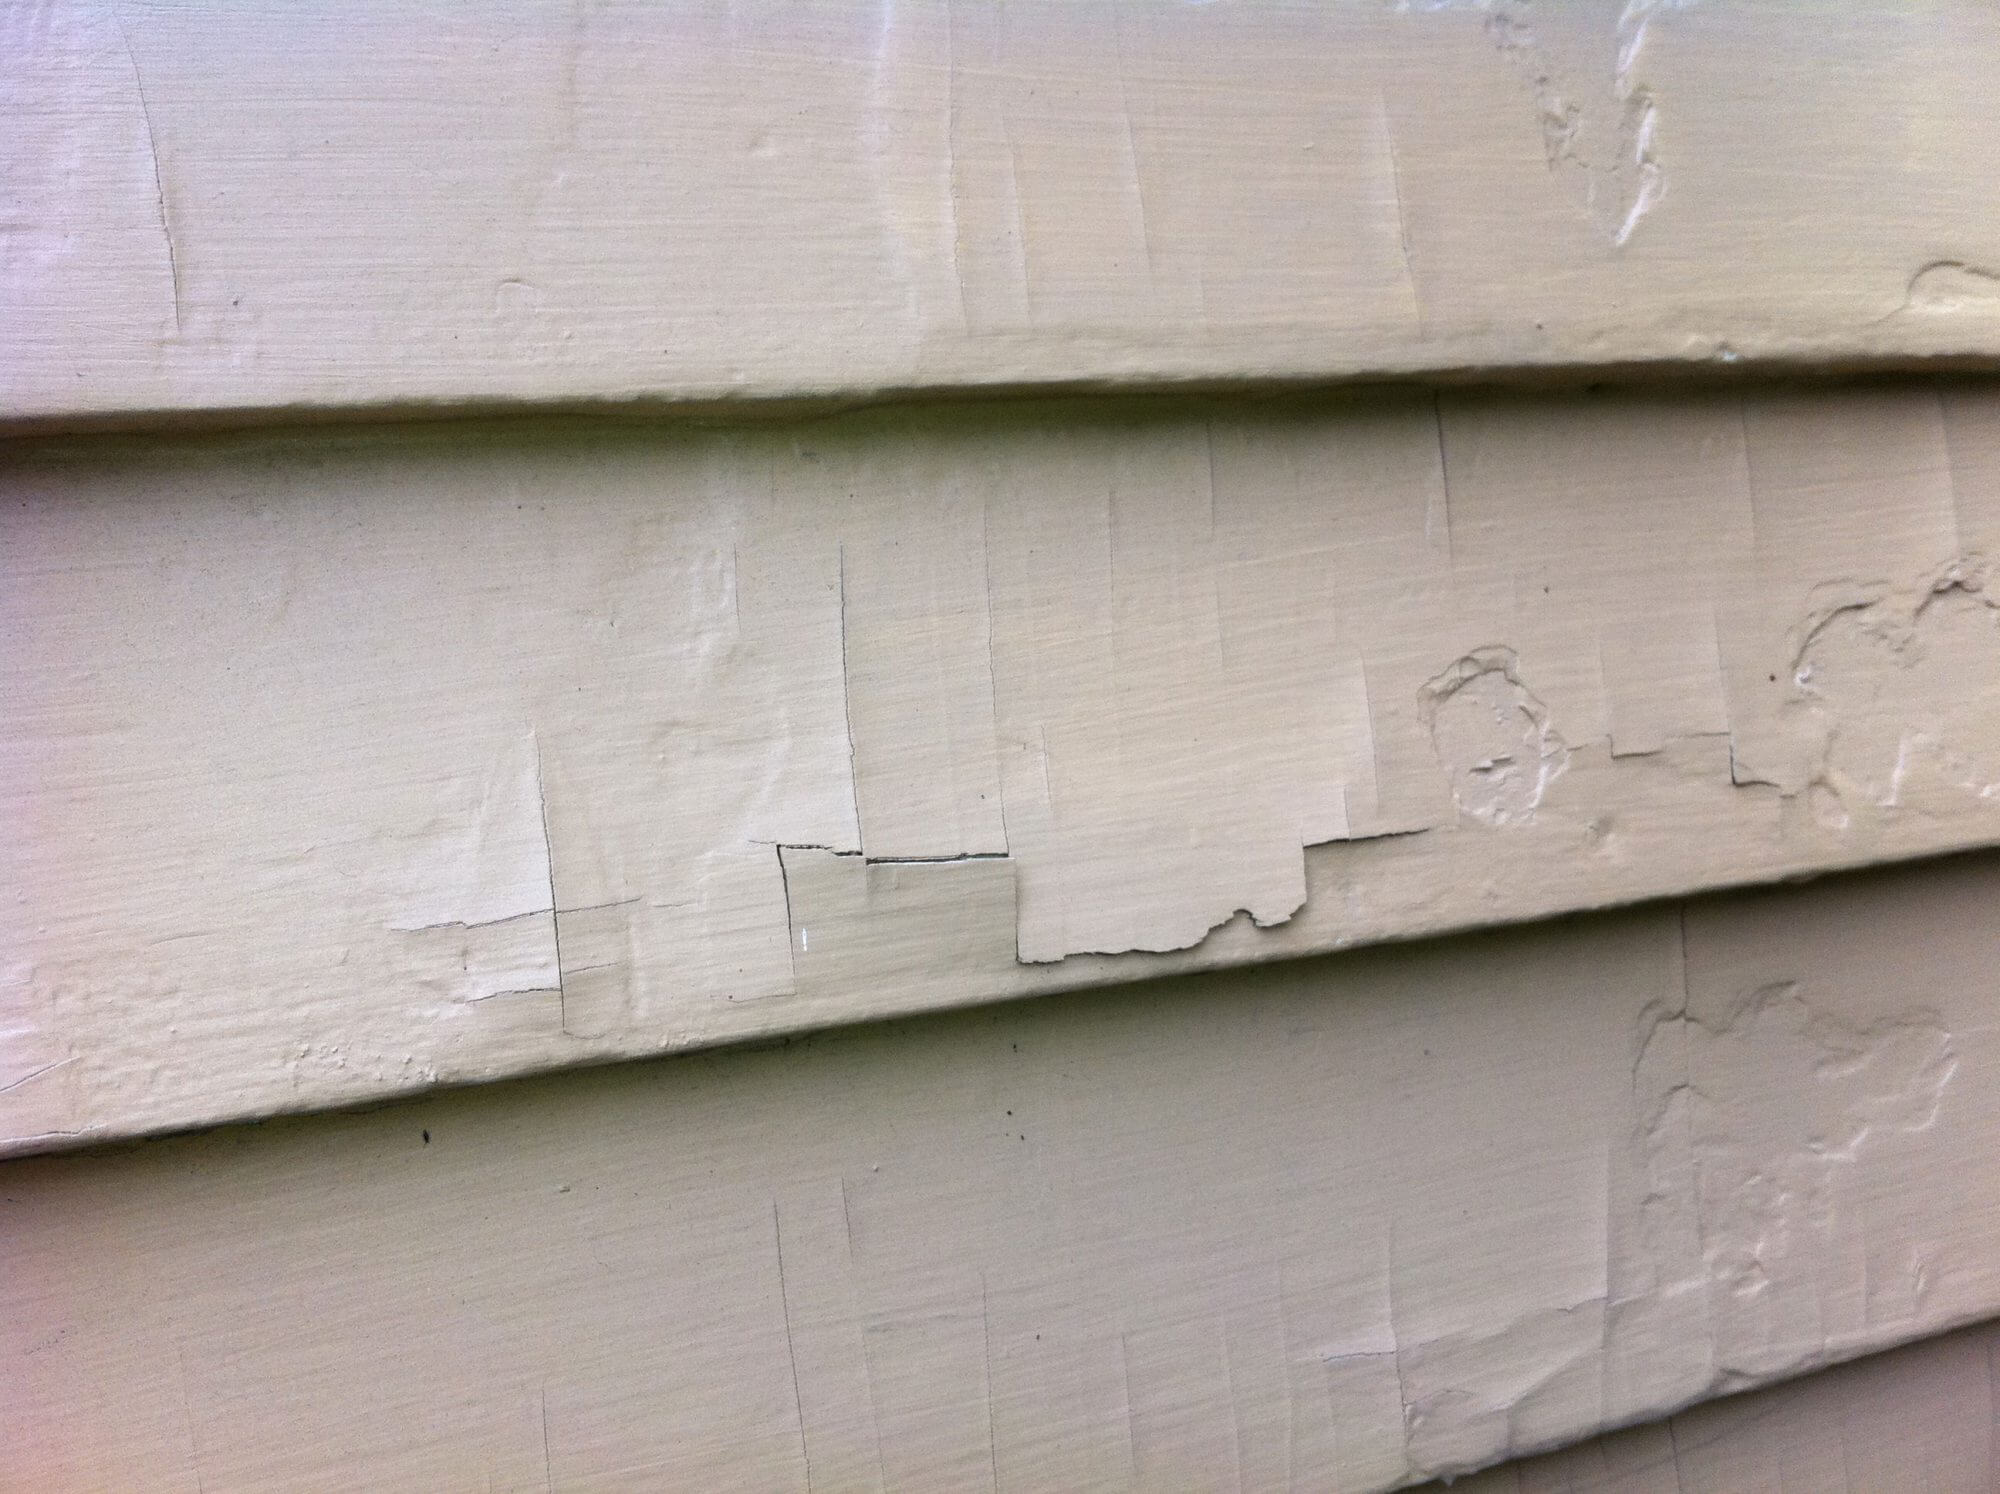 Water damage archives boston house painting company catchlight painting - Exterior paint peeling concept ...